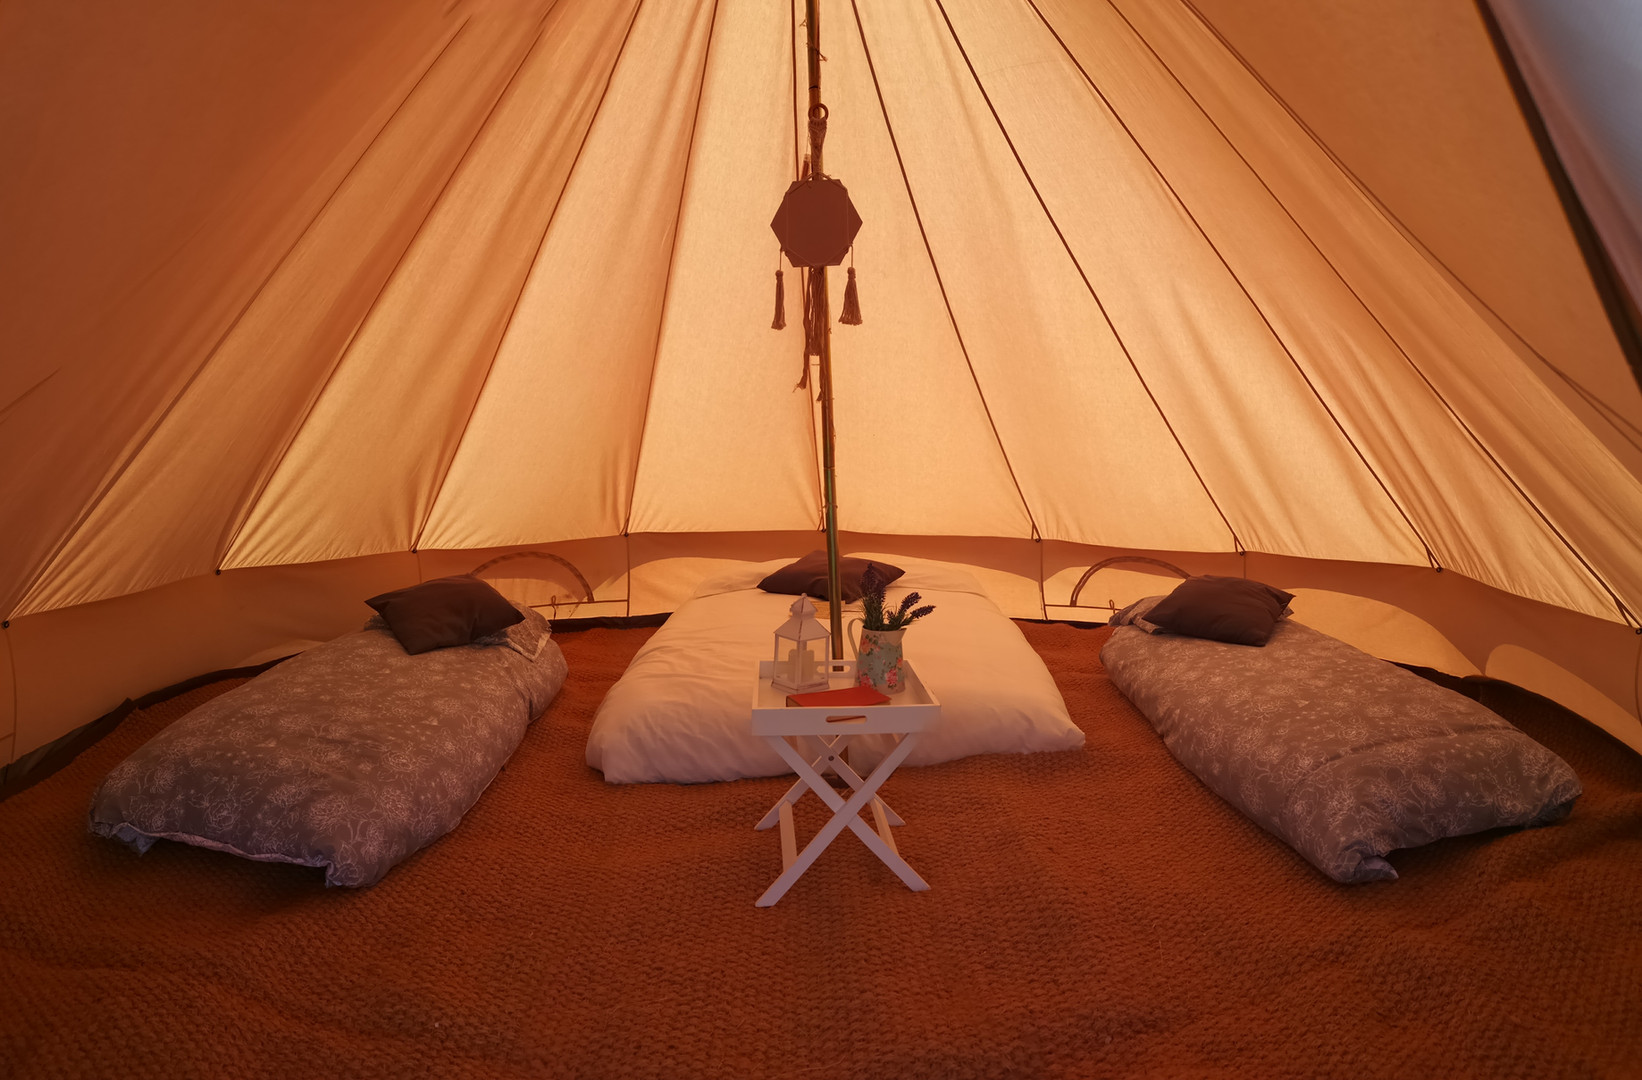 bell tent hire sussex surrey kent glamping festival wedding party